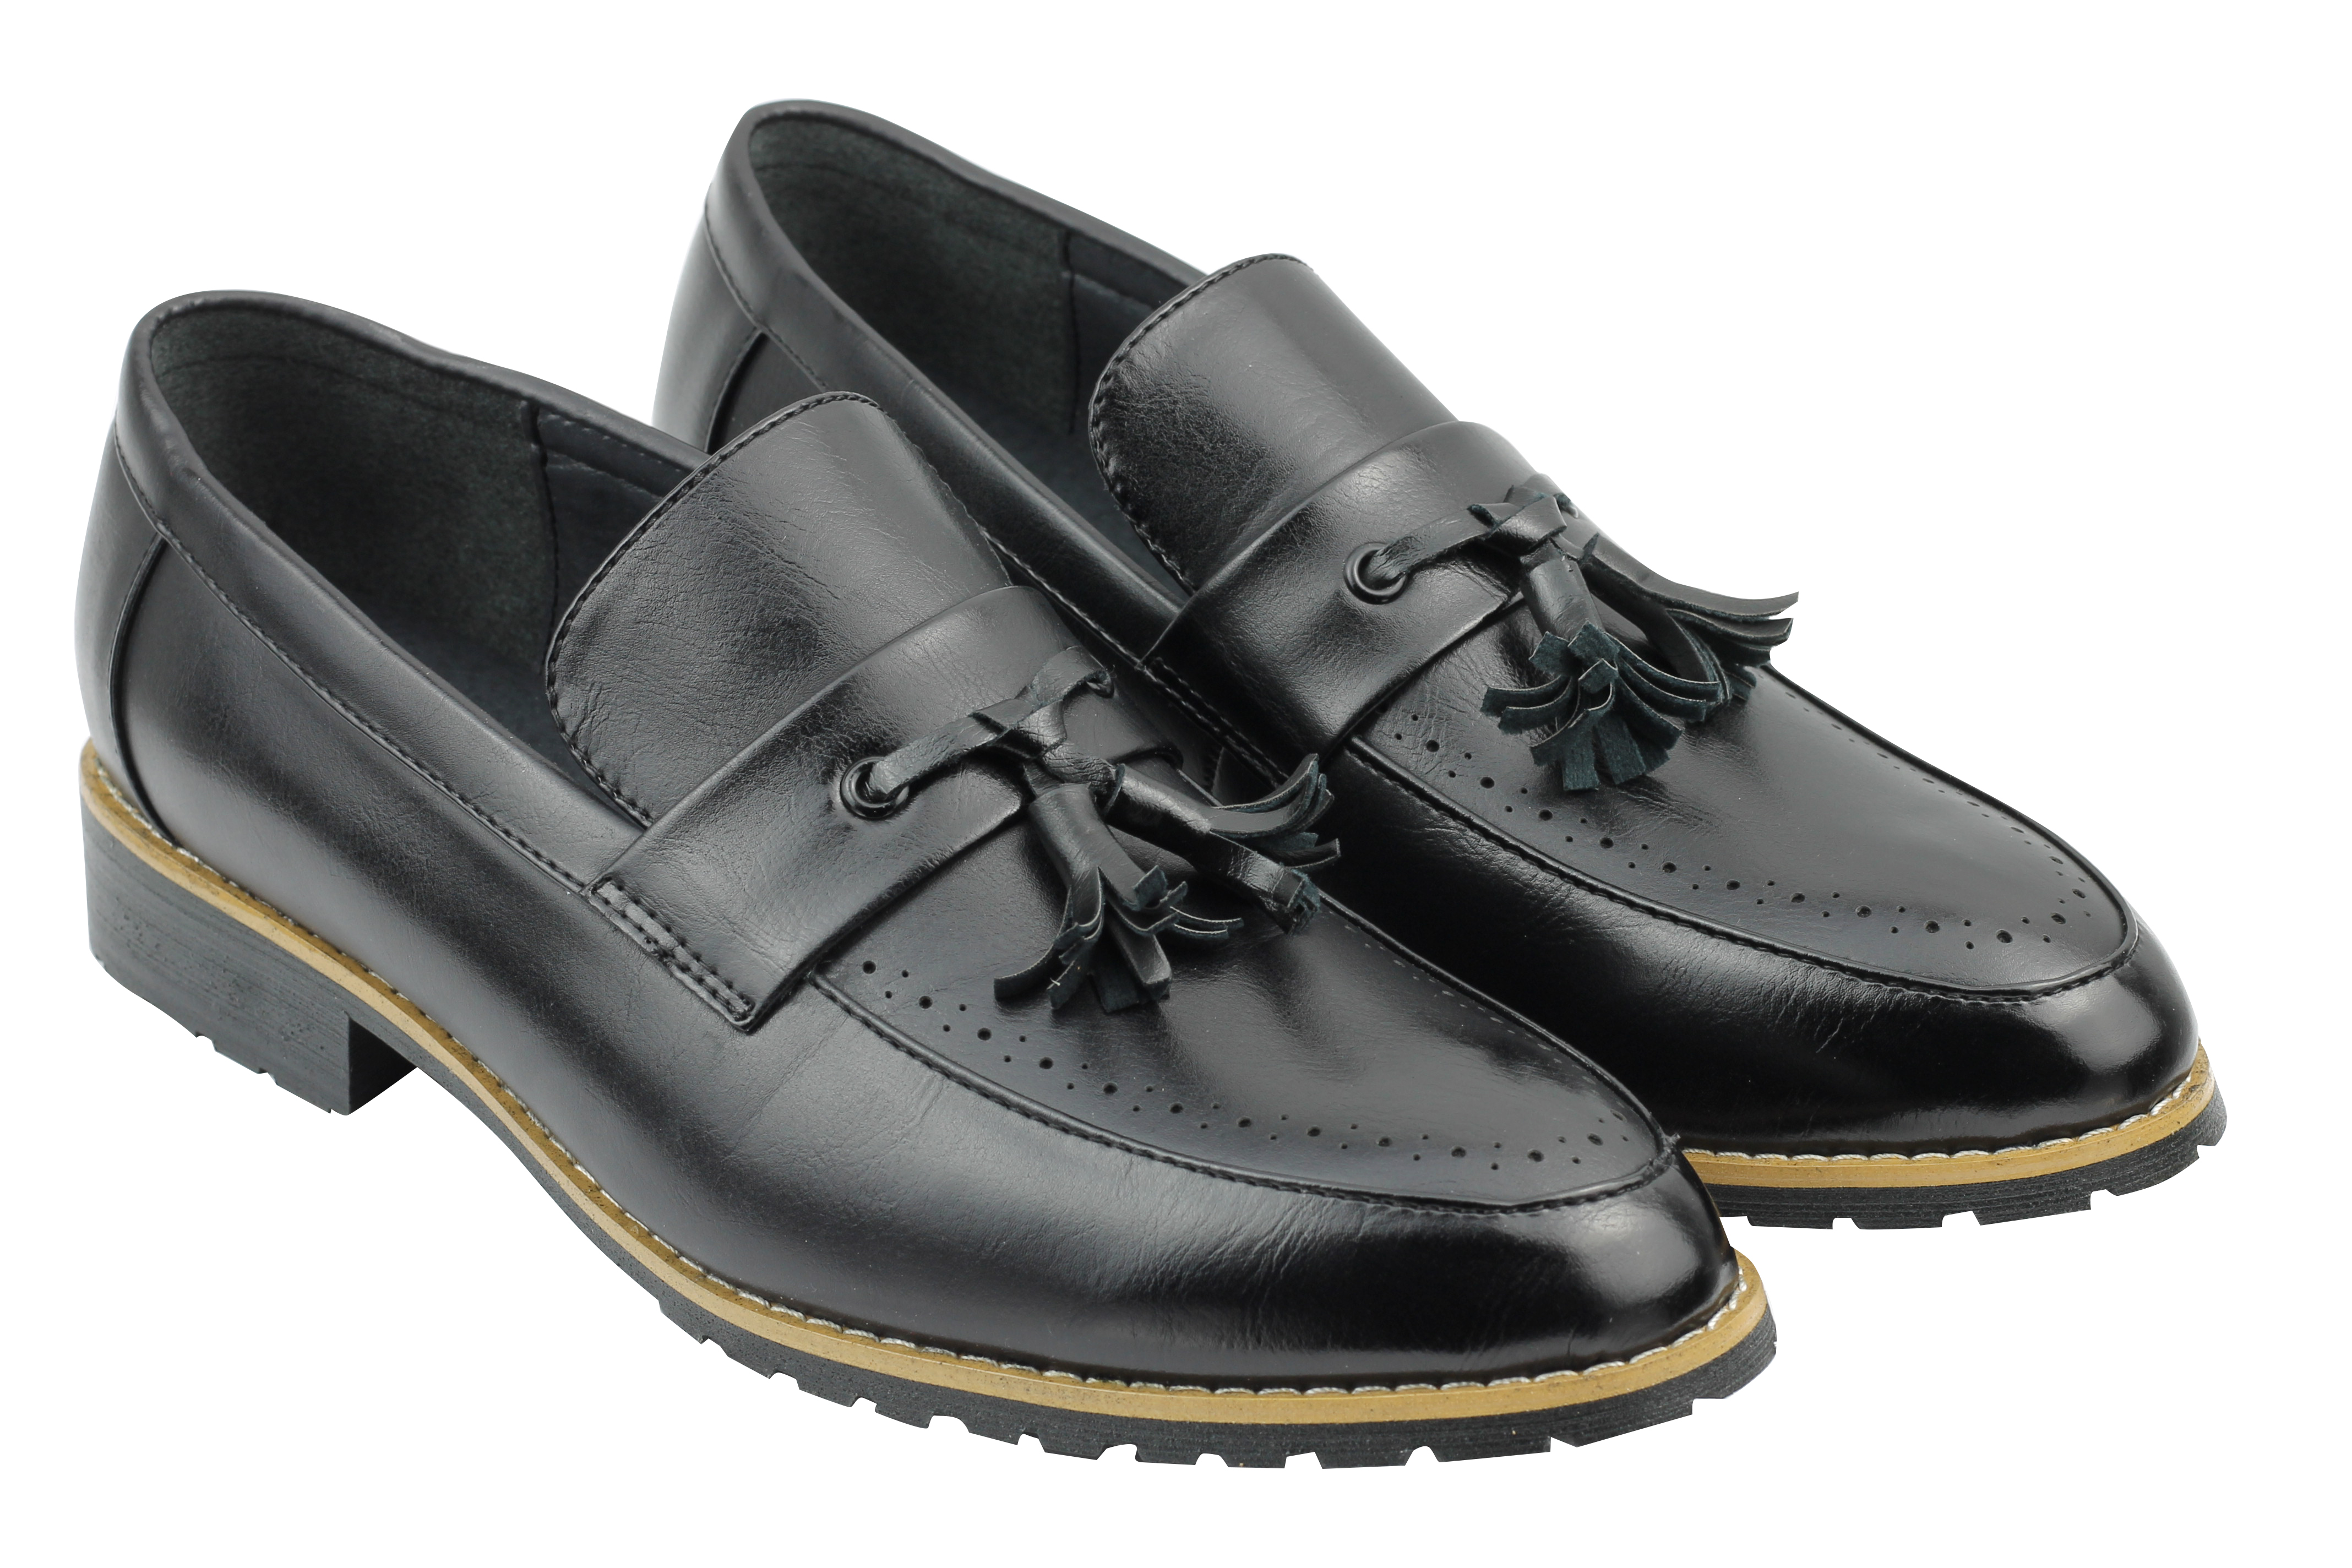 Mens-Leather-Lined-Maroon-Black-Tassel-Loafer-Smart-Casual-Slip-on-Driving-Shoes thumbnail 3